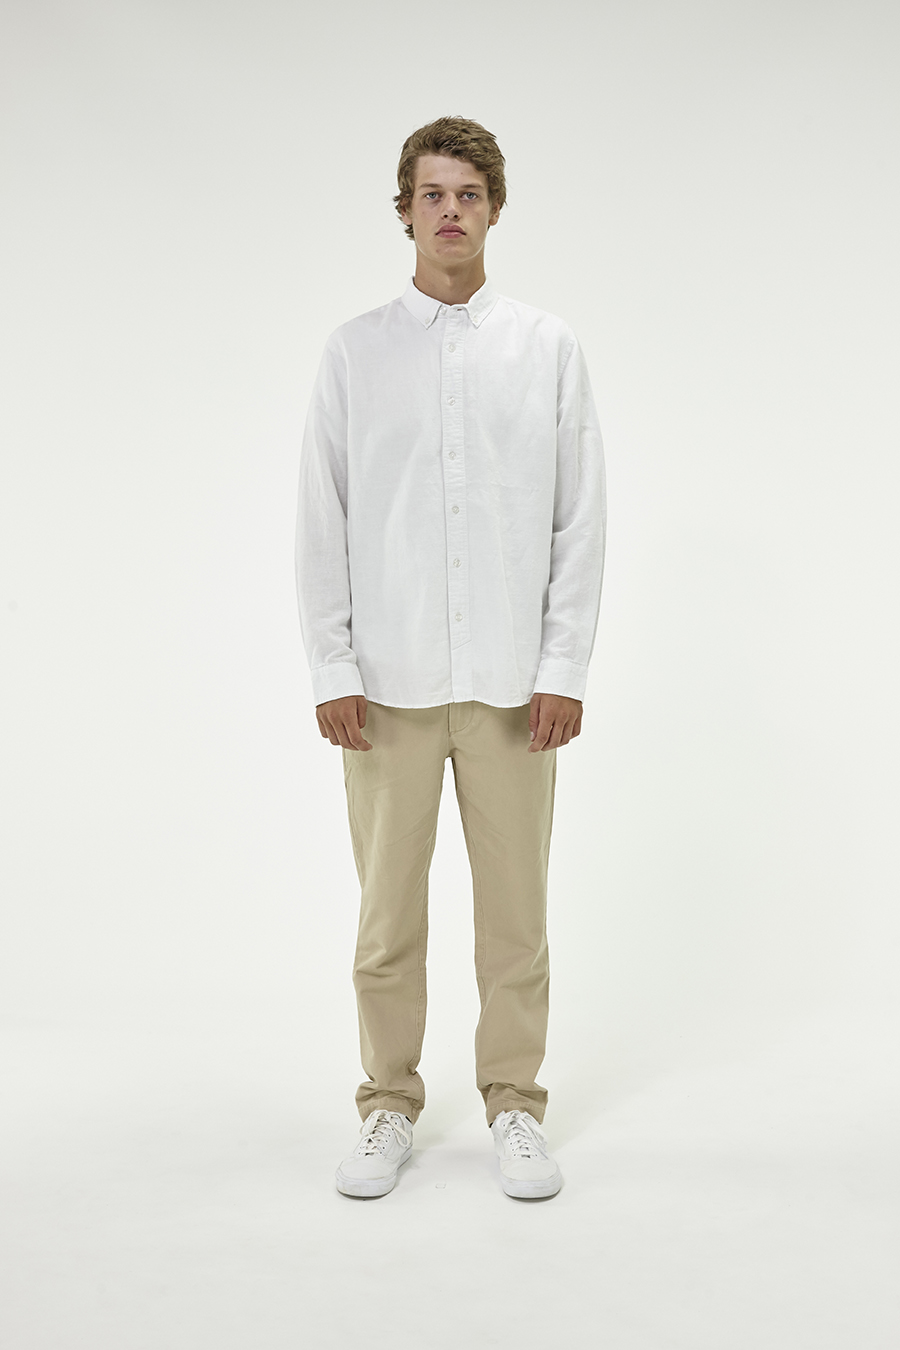 Huffer_Q3-16_M-The-Lin-In-Shirt_White-01